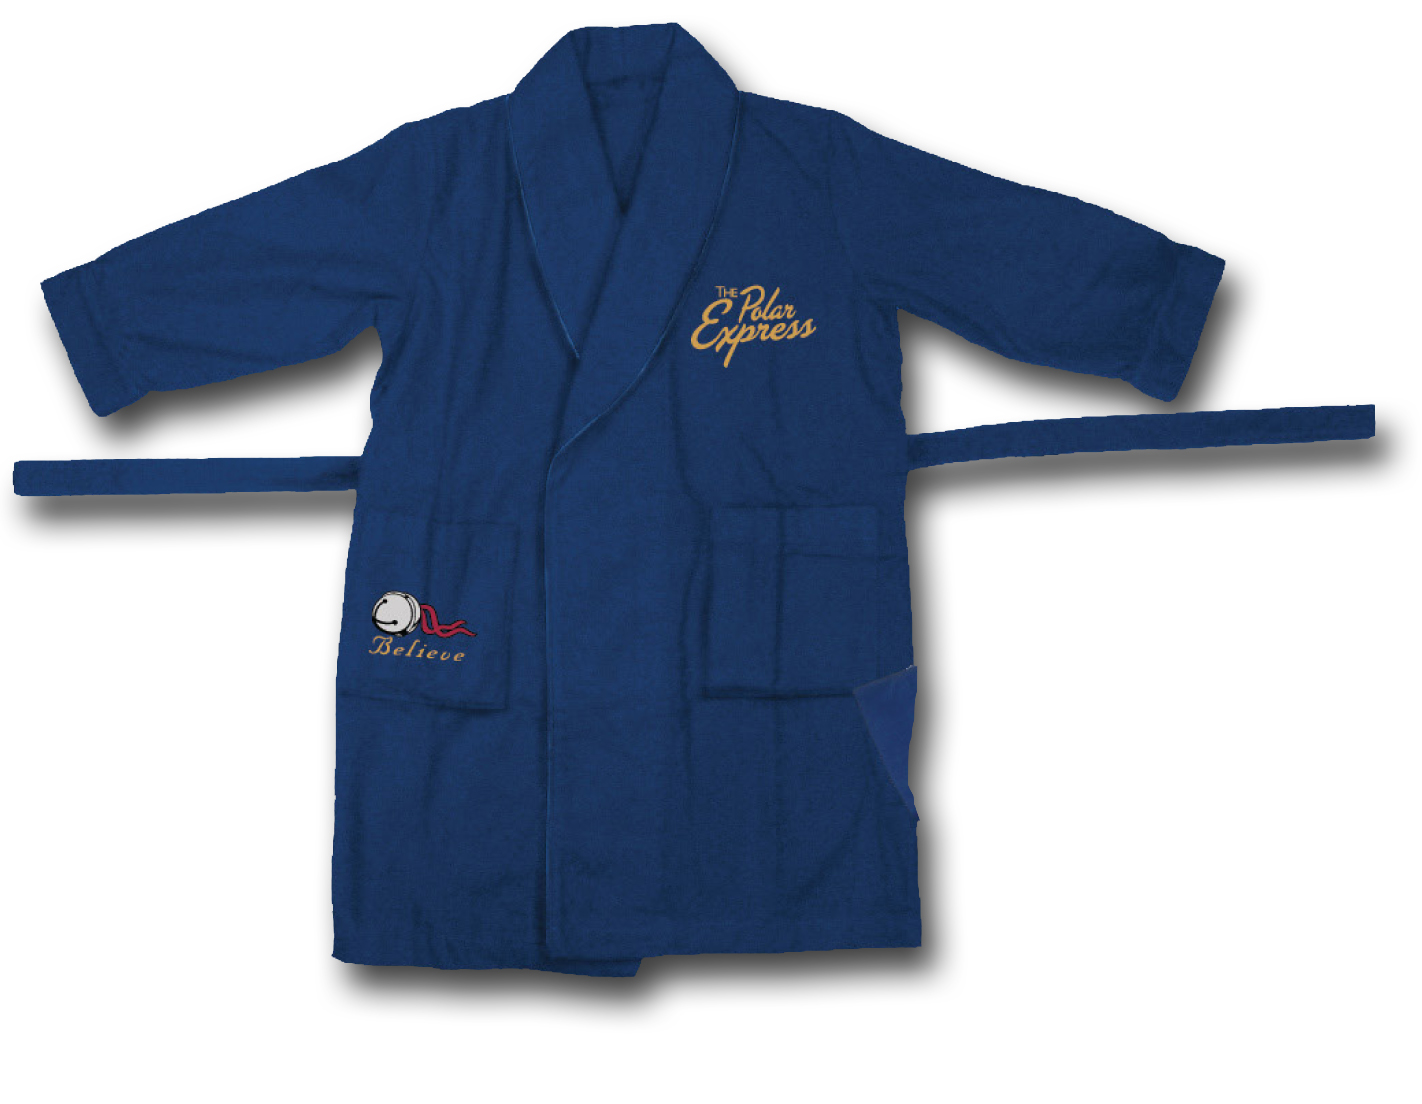 Youth Polar Express Robe (7/8),SL140123-L